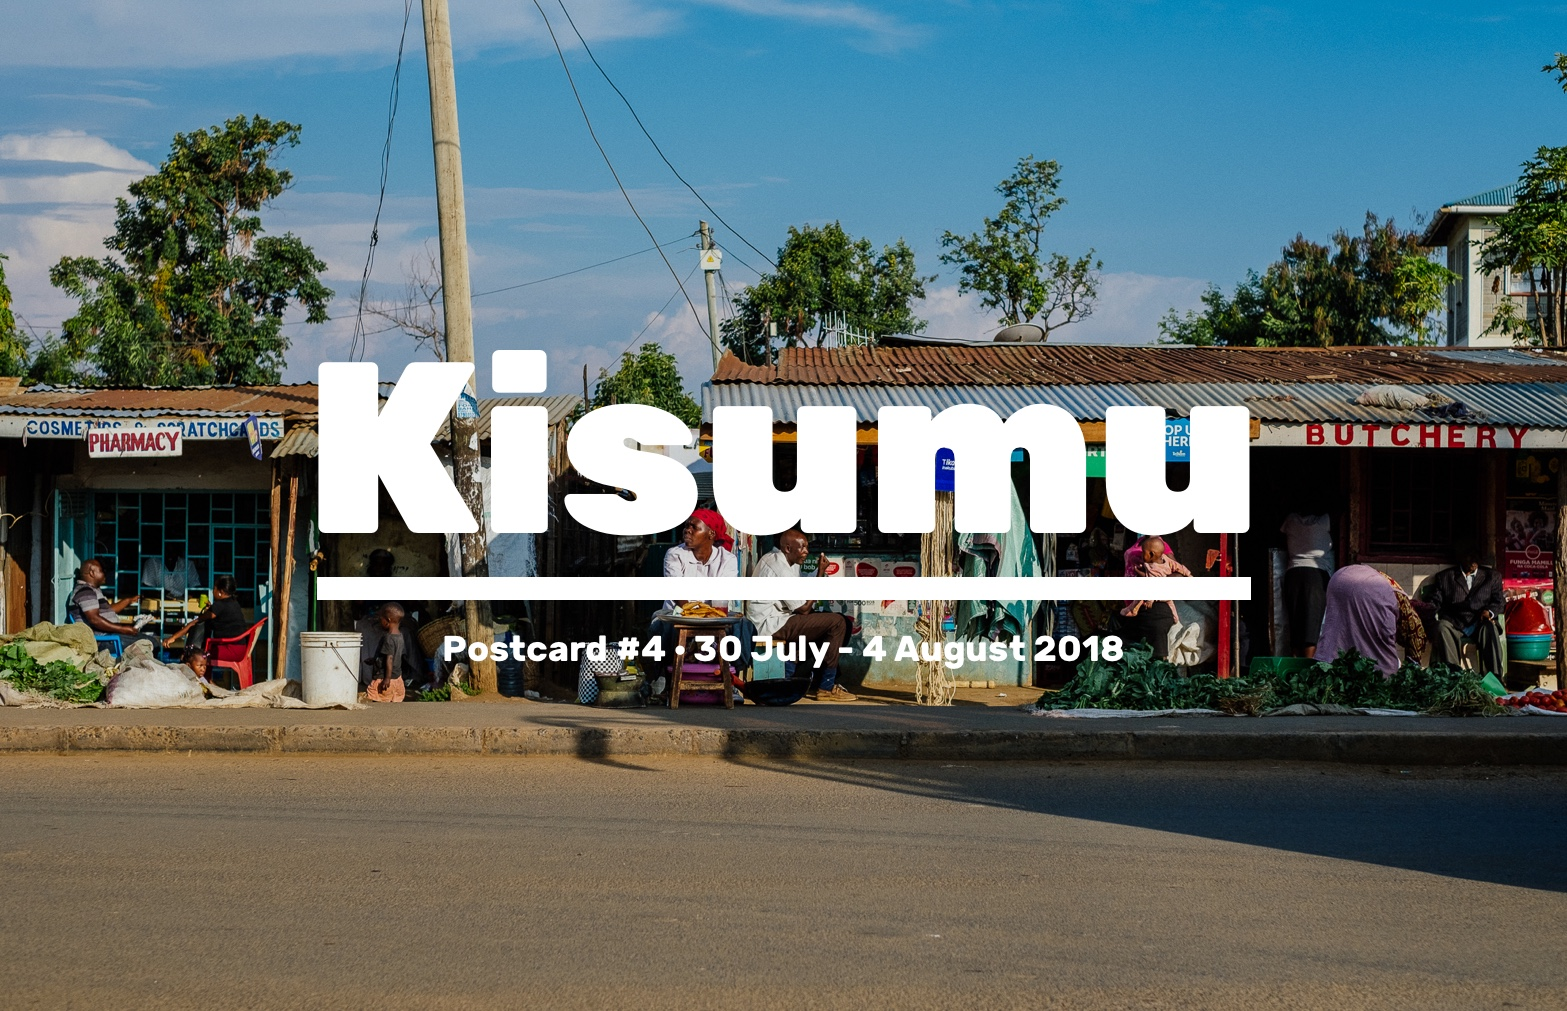 We wrapped up week 4 of our discovery phase. We hit the ground running with great research in Kisumu,doing very inspiring observations and interviews with various health workers. Check out some highlights from this week!